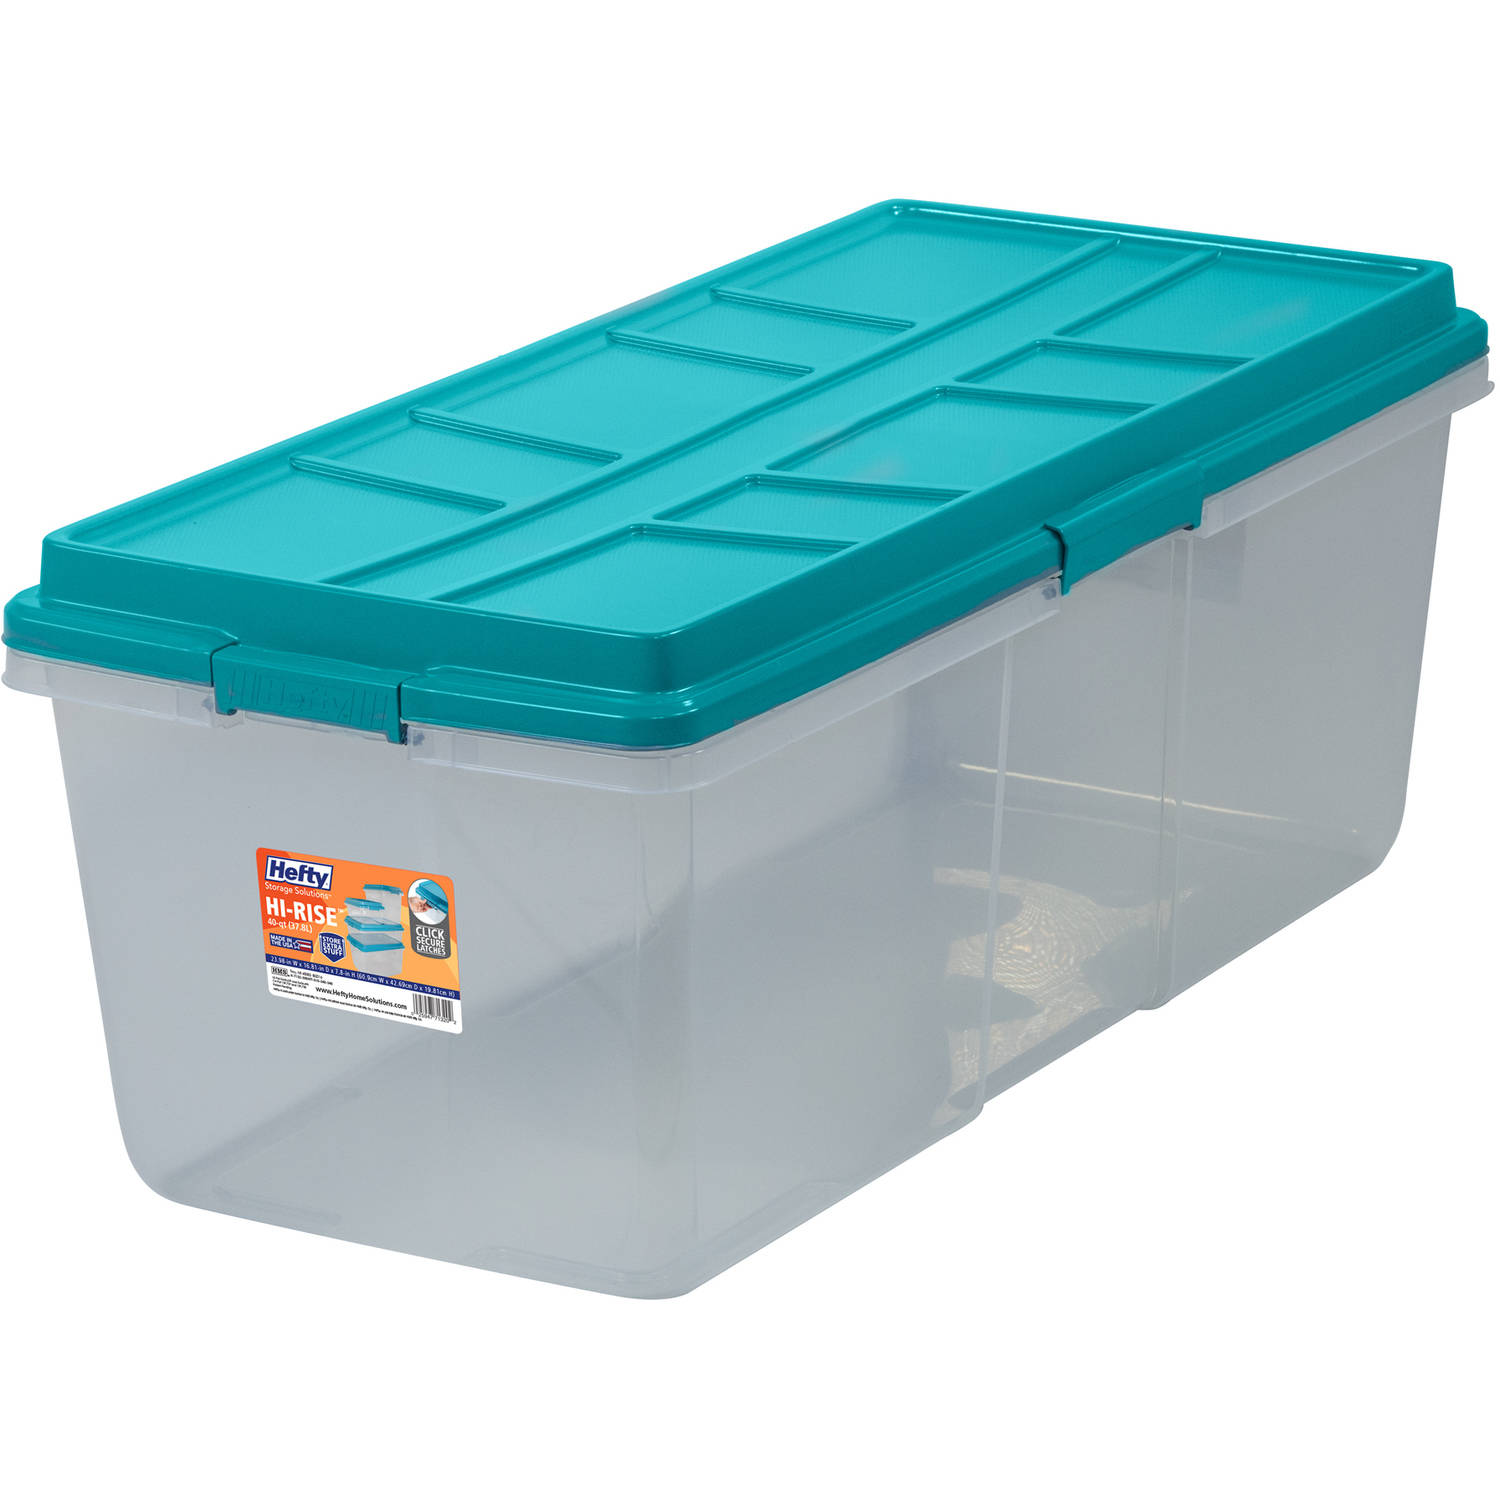 Hefty HI-RISE Storage Bins, 113 Qt. XL Stackable Bin with Latch, Teal/Clear